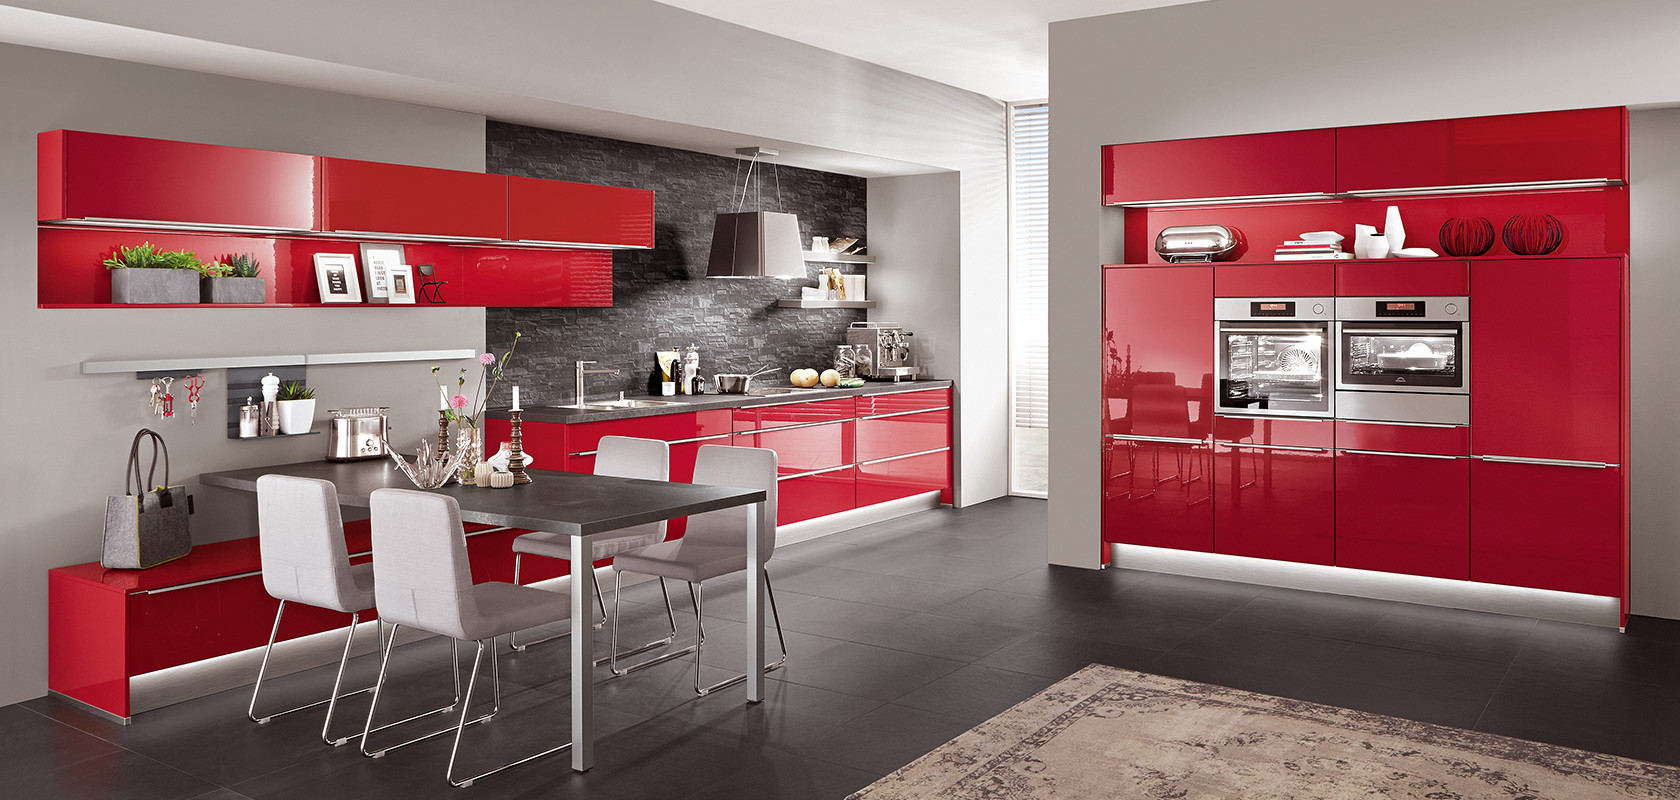 This kitchen in Red high gloss lacquered laminate is a clear affirmation of colour and a real eye-catcher in every flat. Indeed, uprights and top shelves were combined in the same shade and made from the same material. The only accents necessary are the beautifully harmonised stainless steel coloured bar handles and the worktop in Black granite décor.